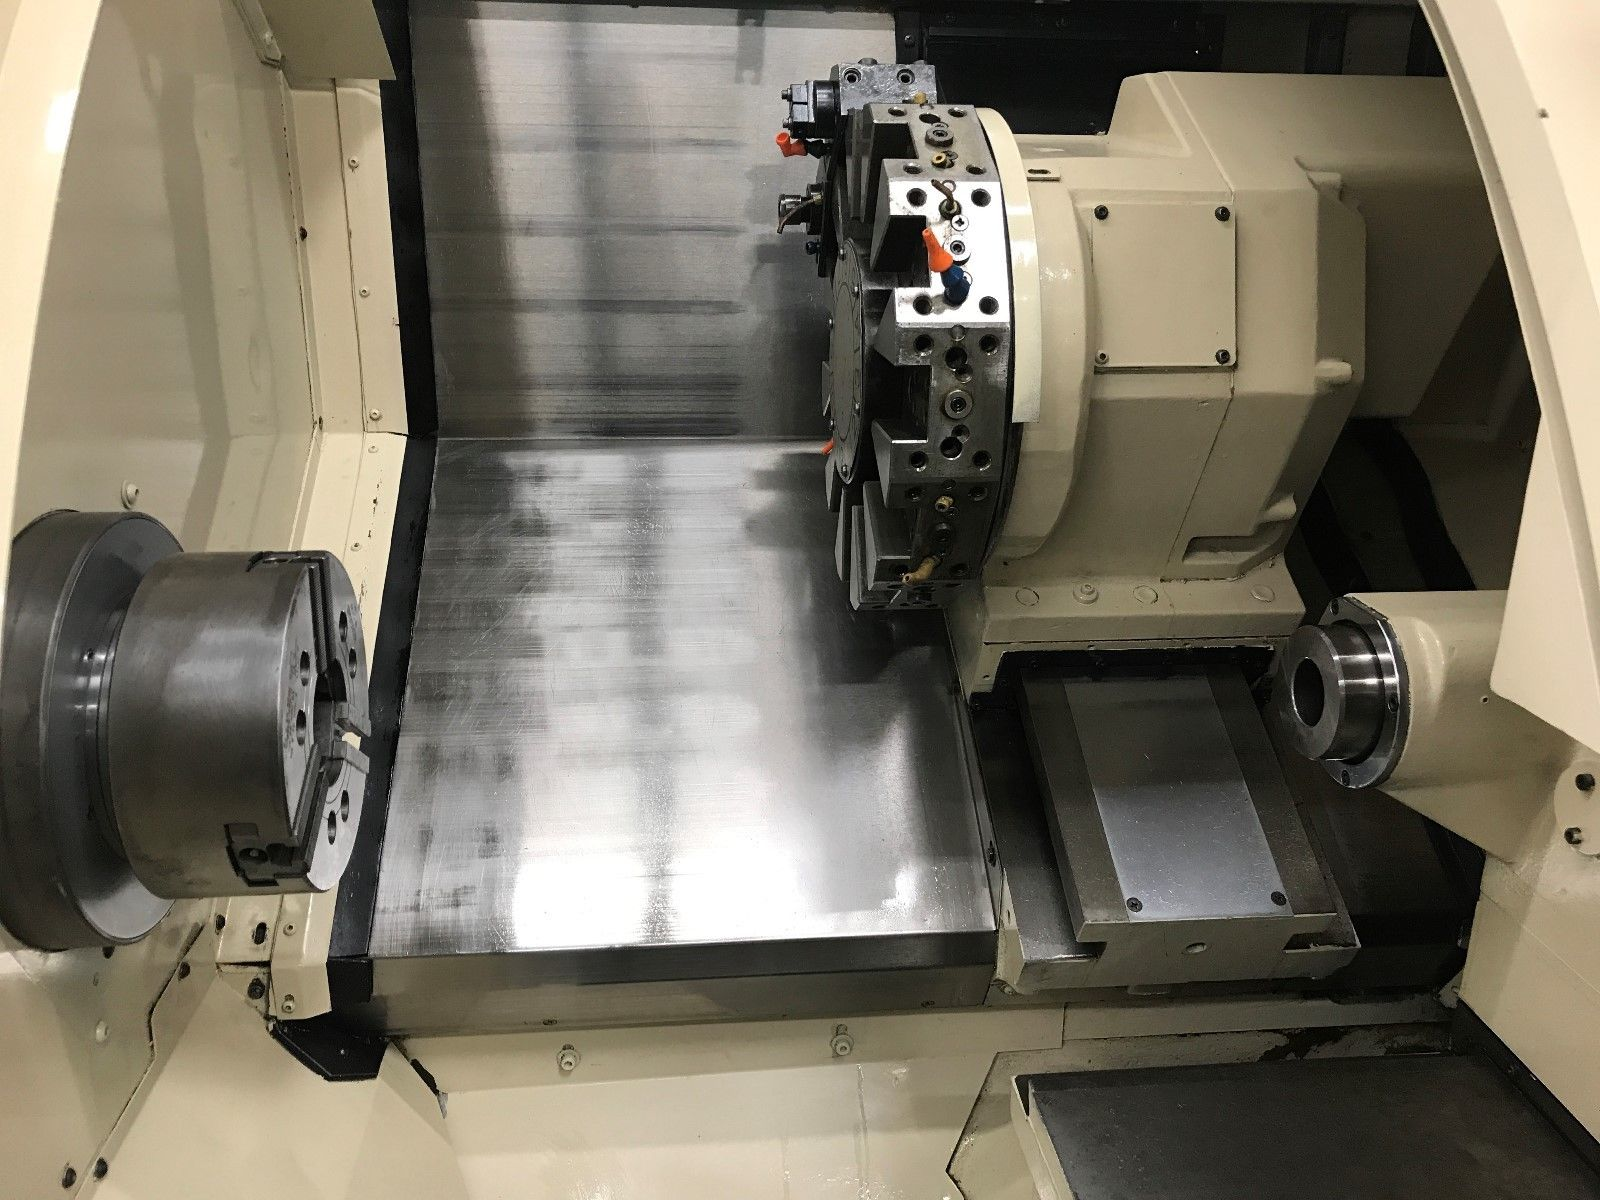 ... okuma-crown-762s-sb-cnc-turn-mill-usa ...